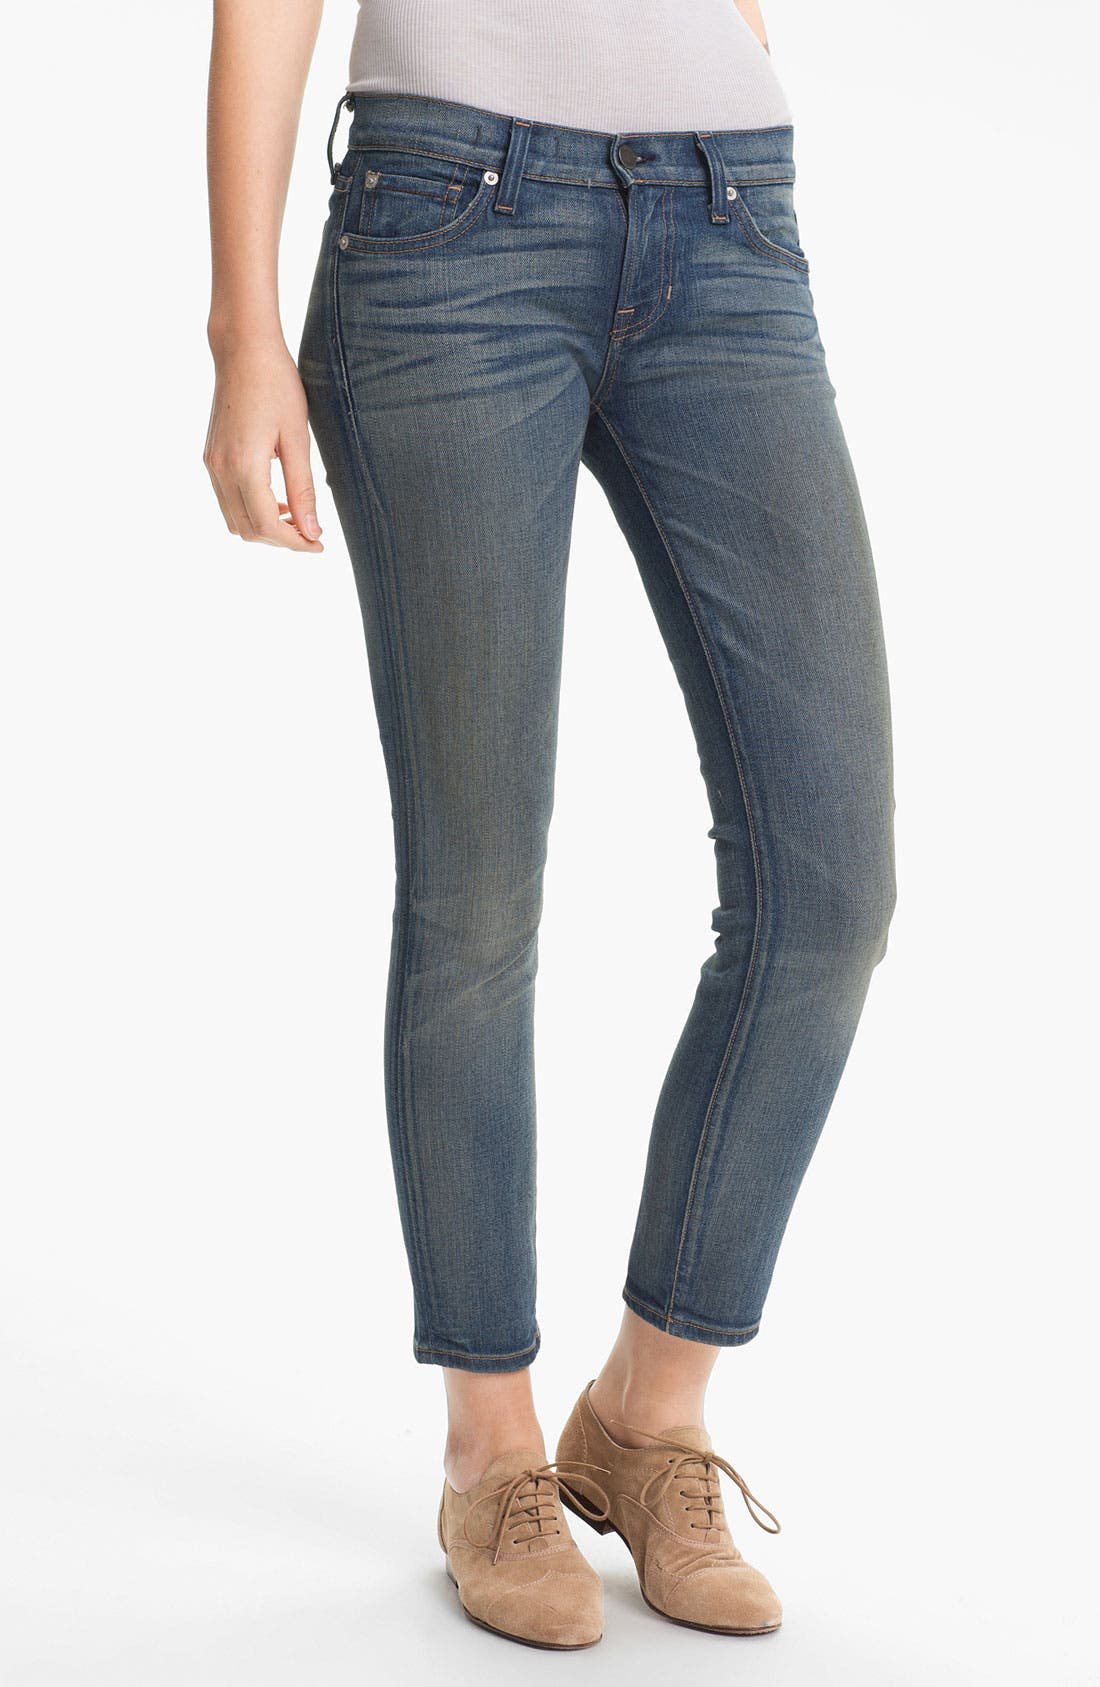 Main Image - TEXTILE Elizabeth and James 'Ozzy' Skinny Crop Jeans